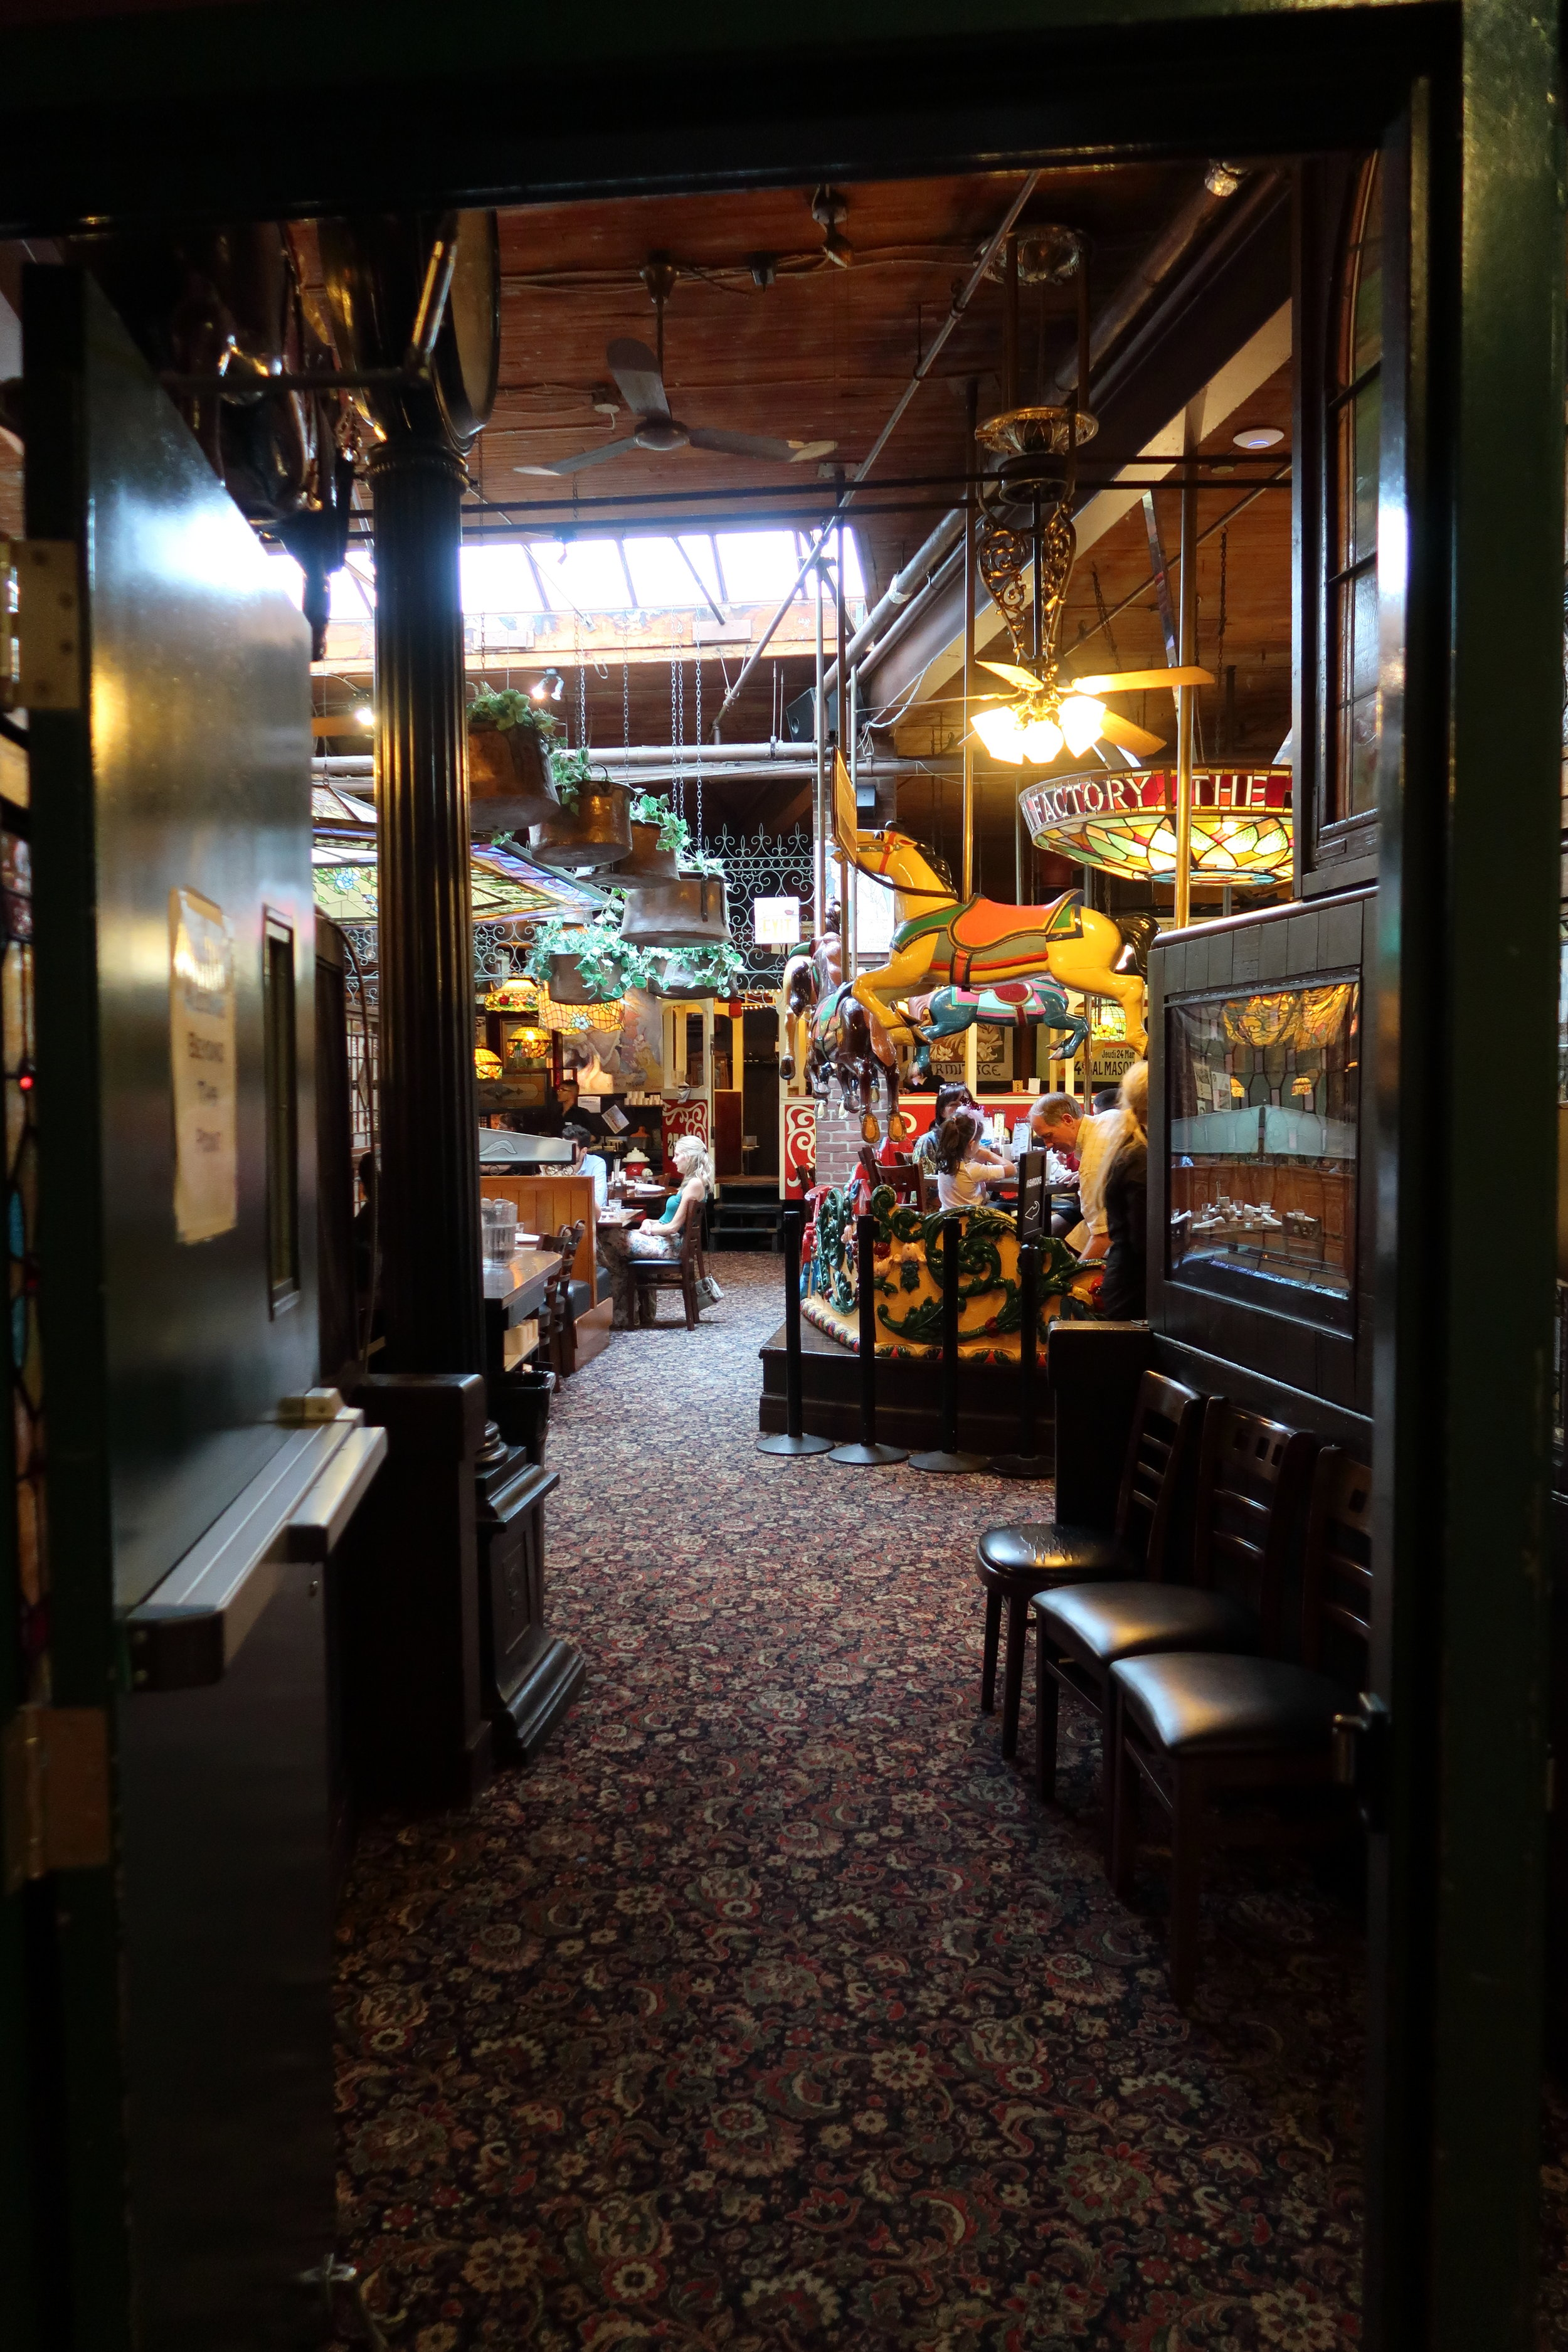 Entrance to Spaghetti Factory from Scotland Yard